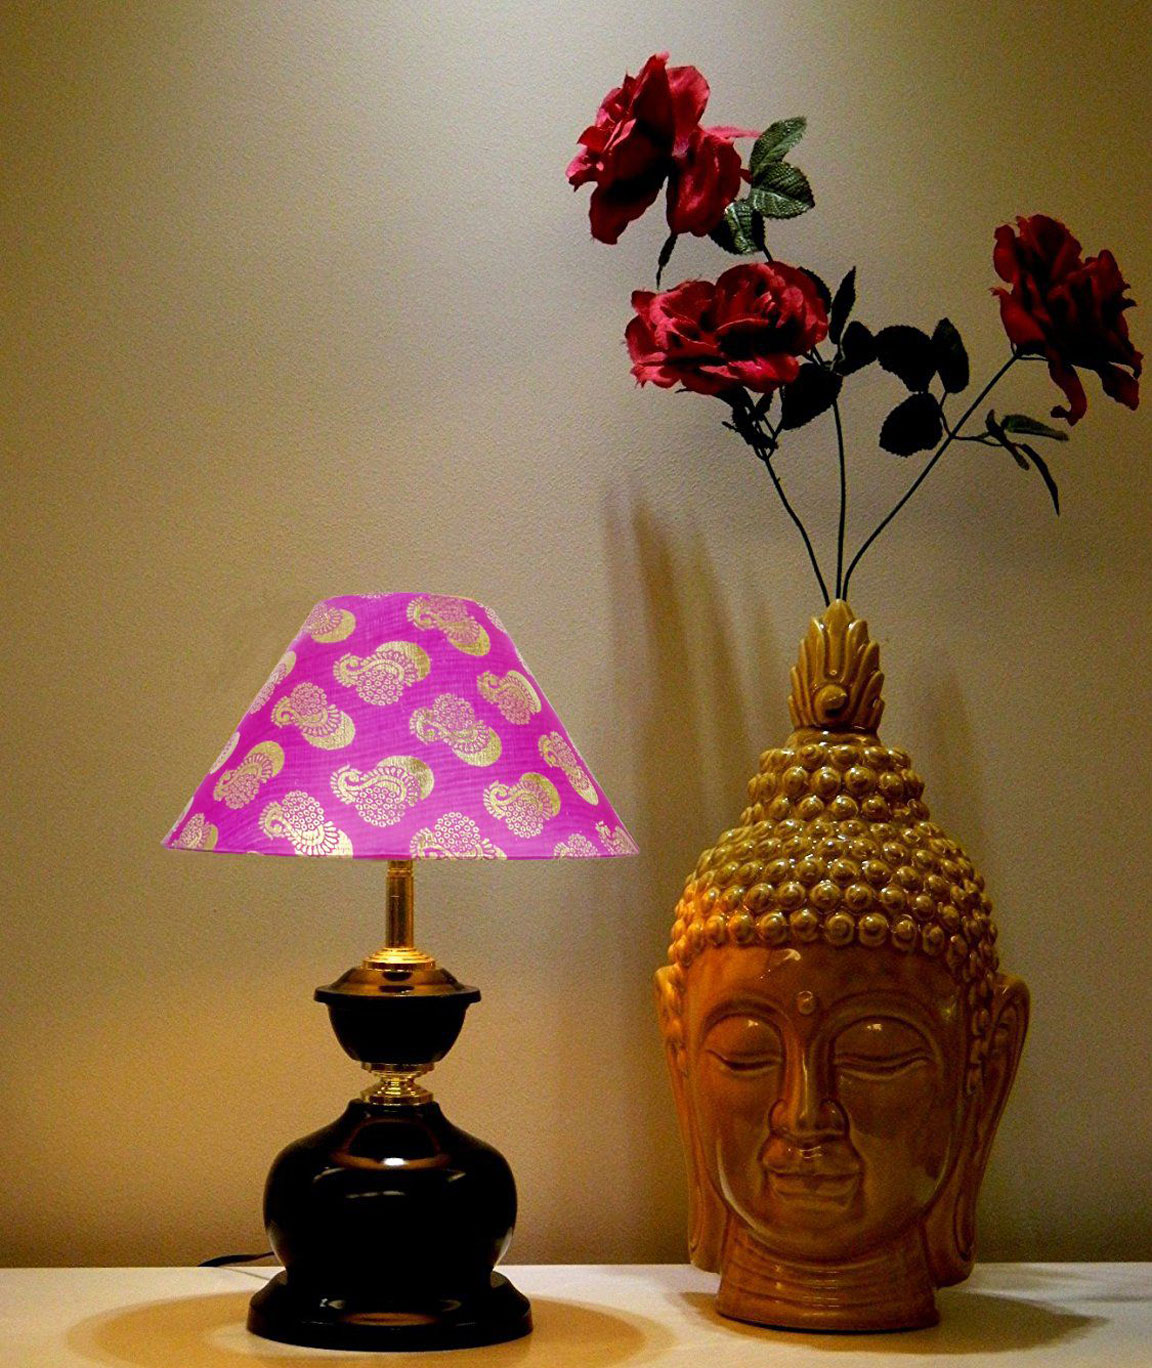 RDC Brown Designer Table Lamp with 10 Inches Round Pink with Golden Designer Lamp Shade